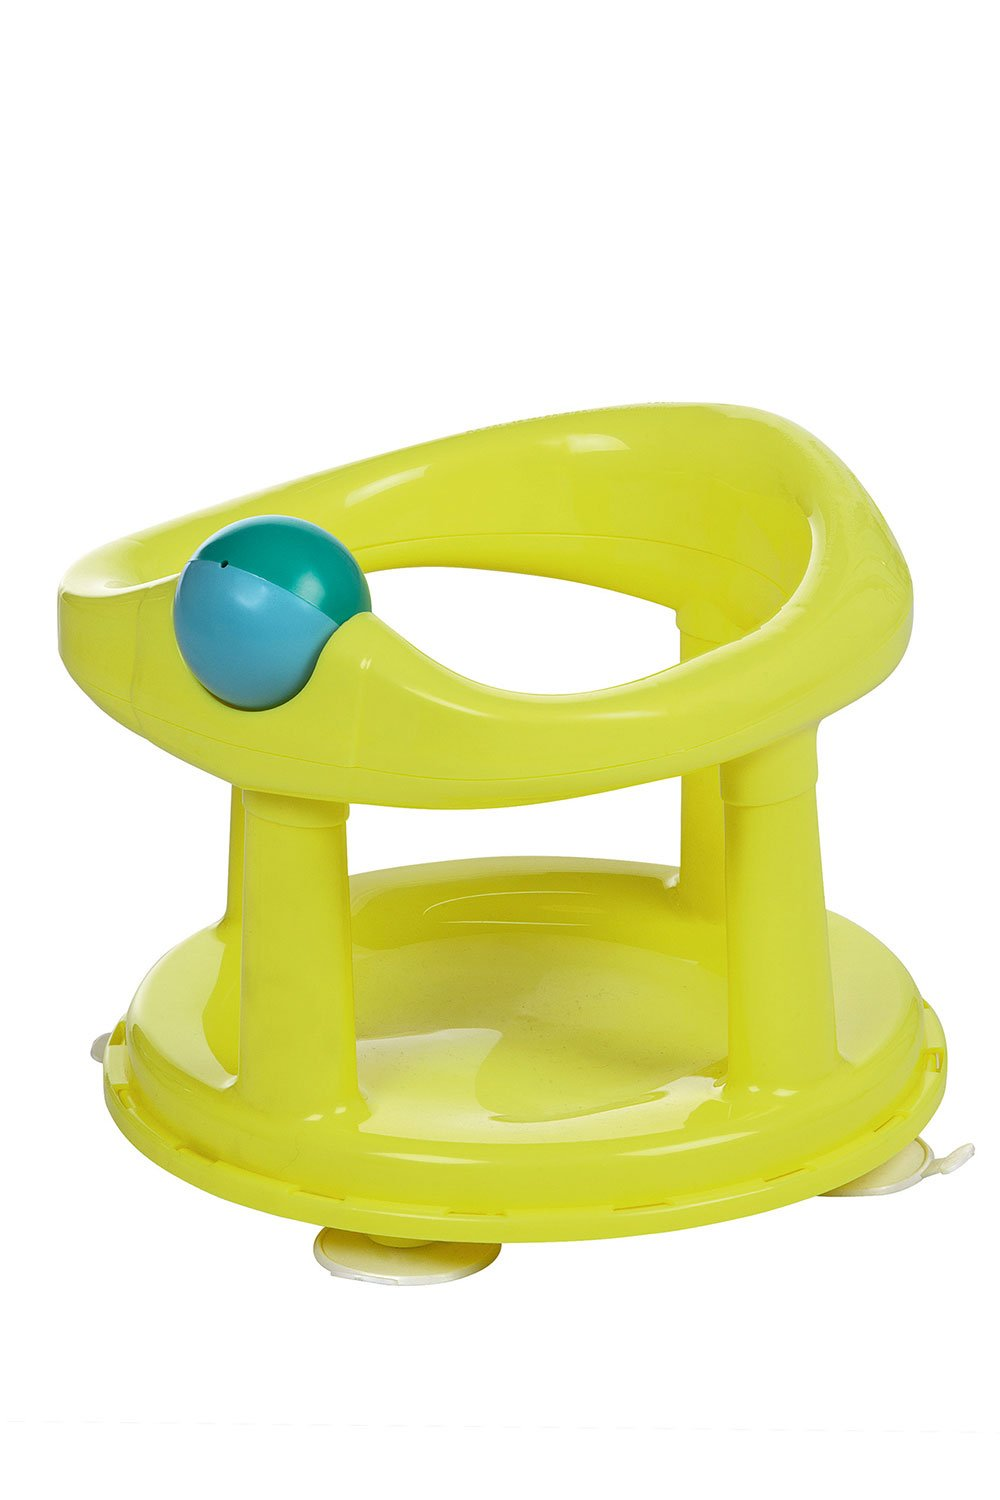 Safety 1st Swivel Bath Seat (Lime) by Safety 1st 32110141